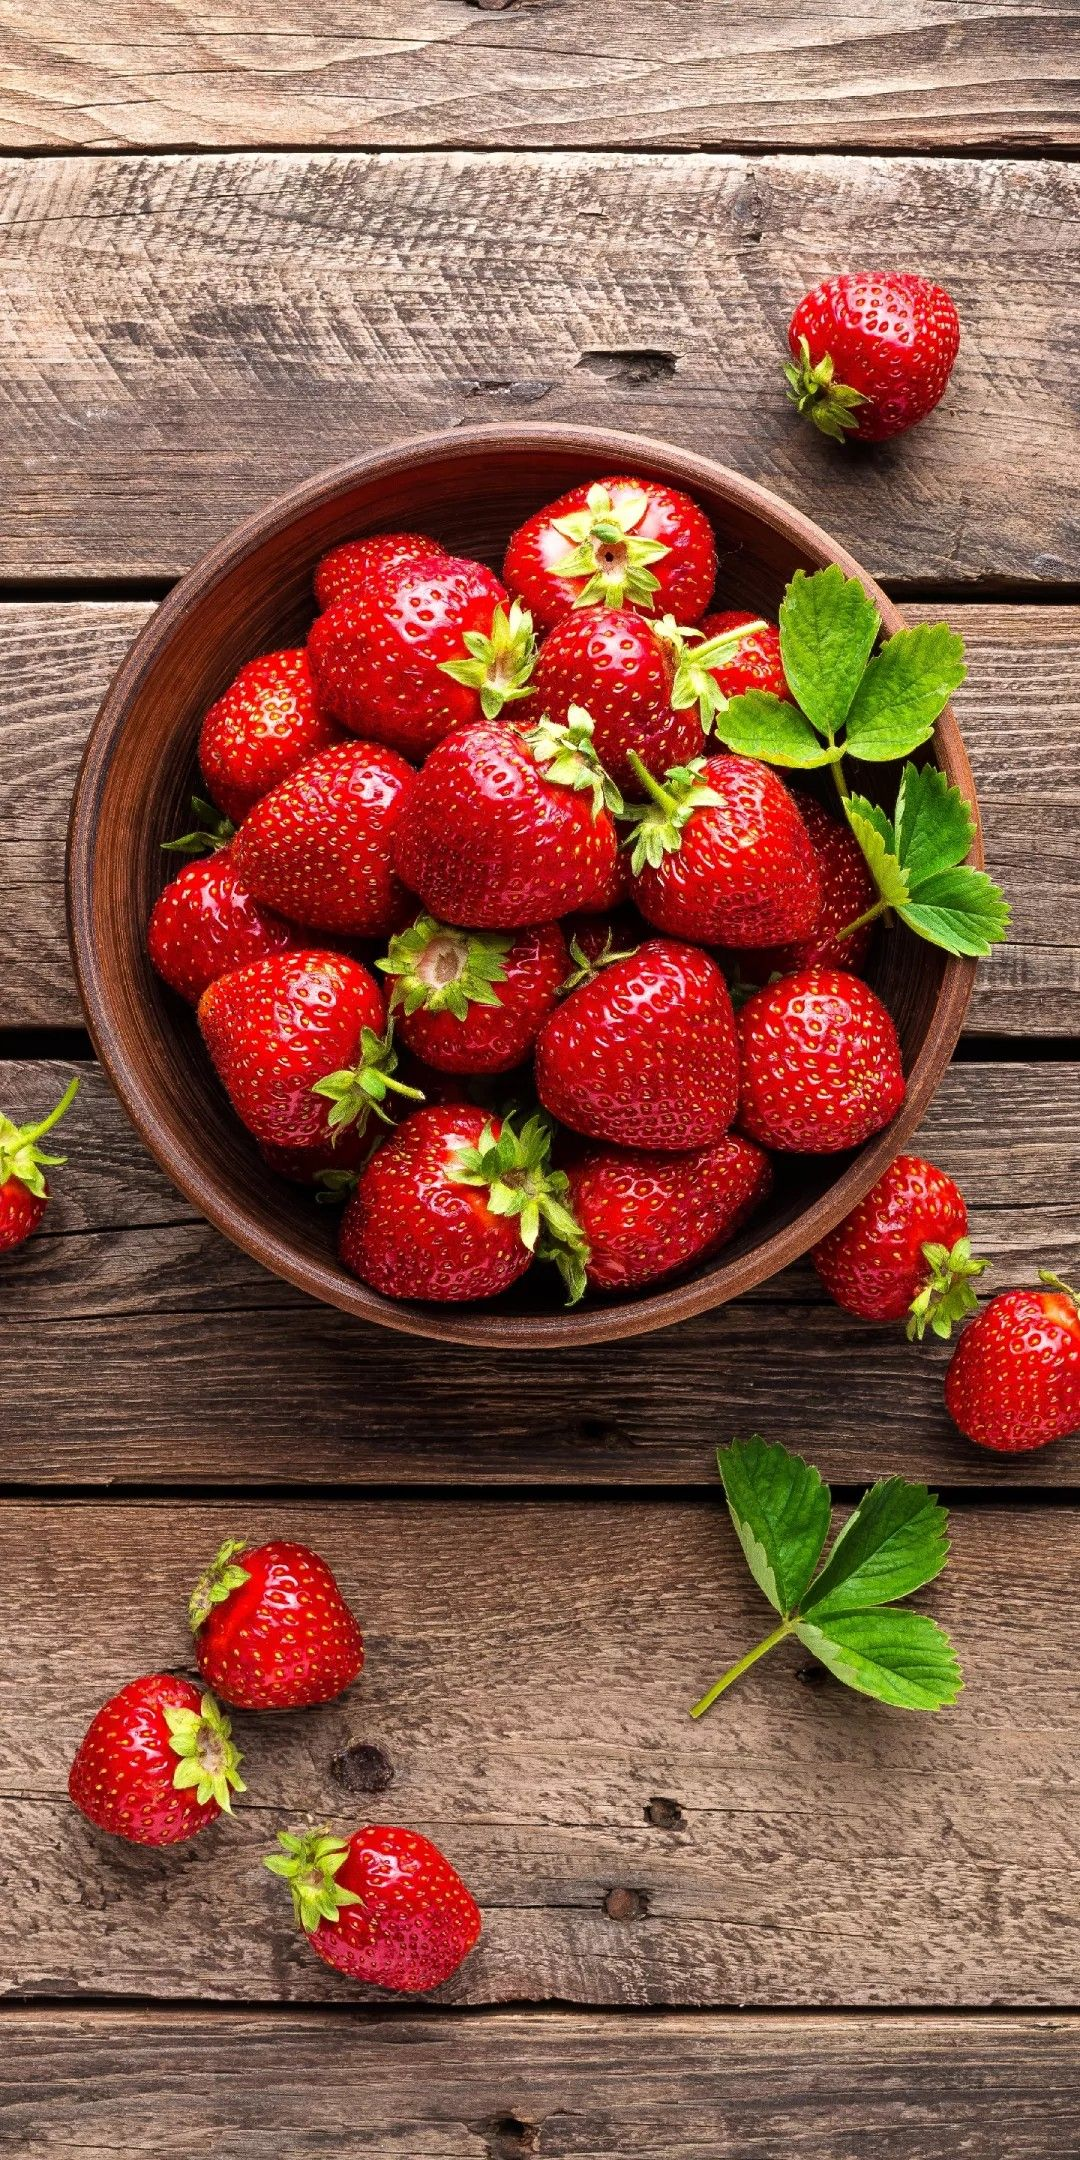 Pin by 儀沛 陳 on Cute's Food Fruit photography, Strawberry